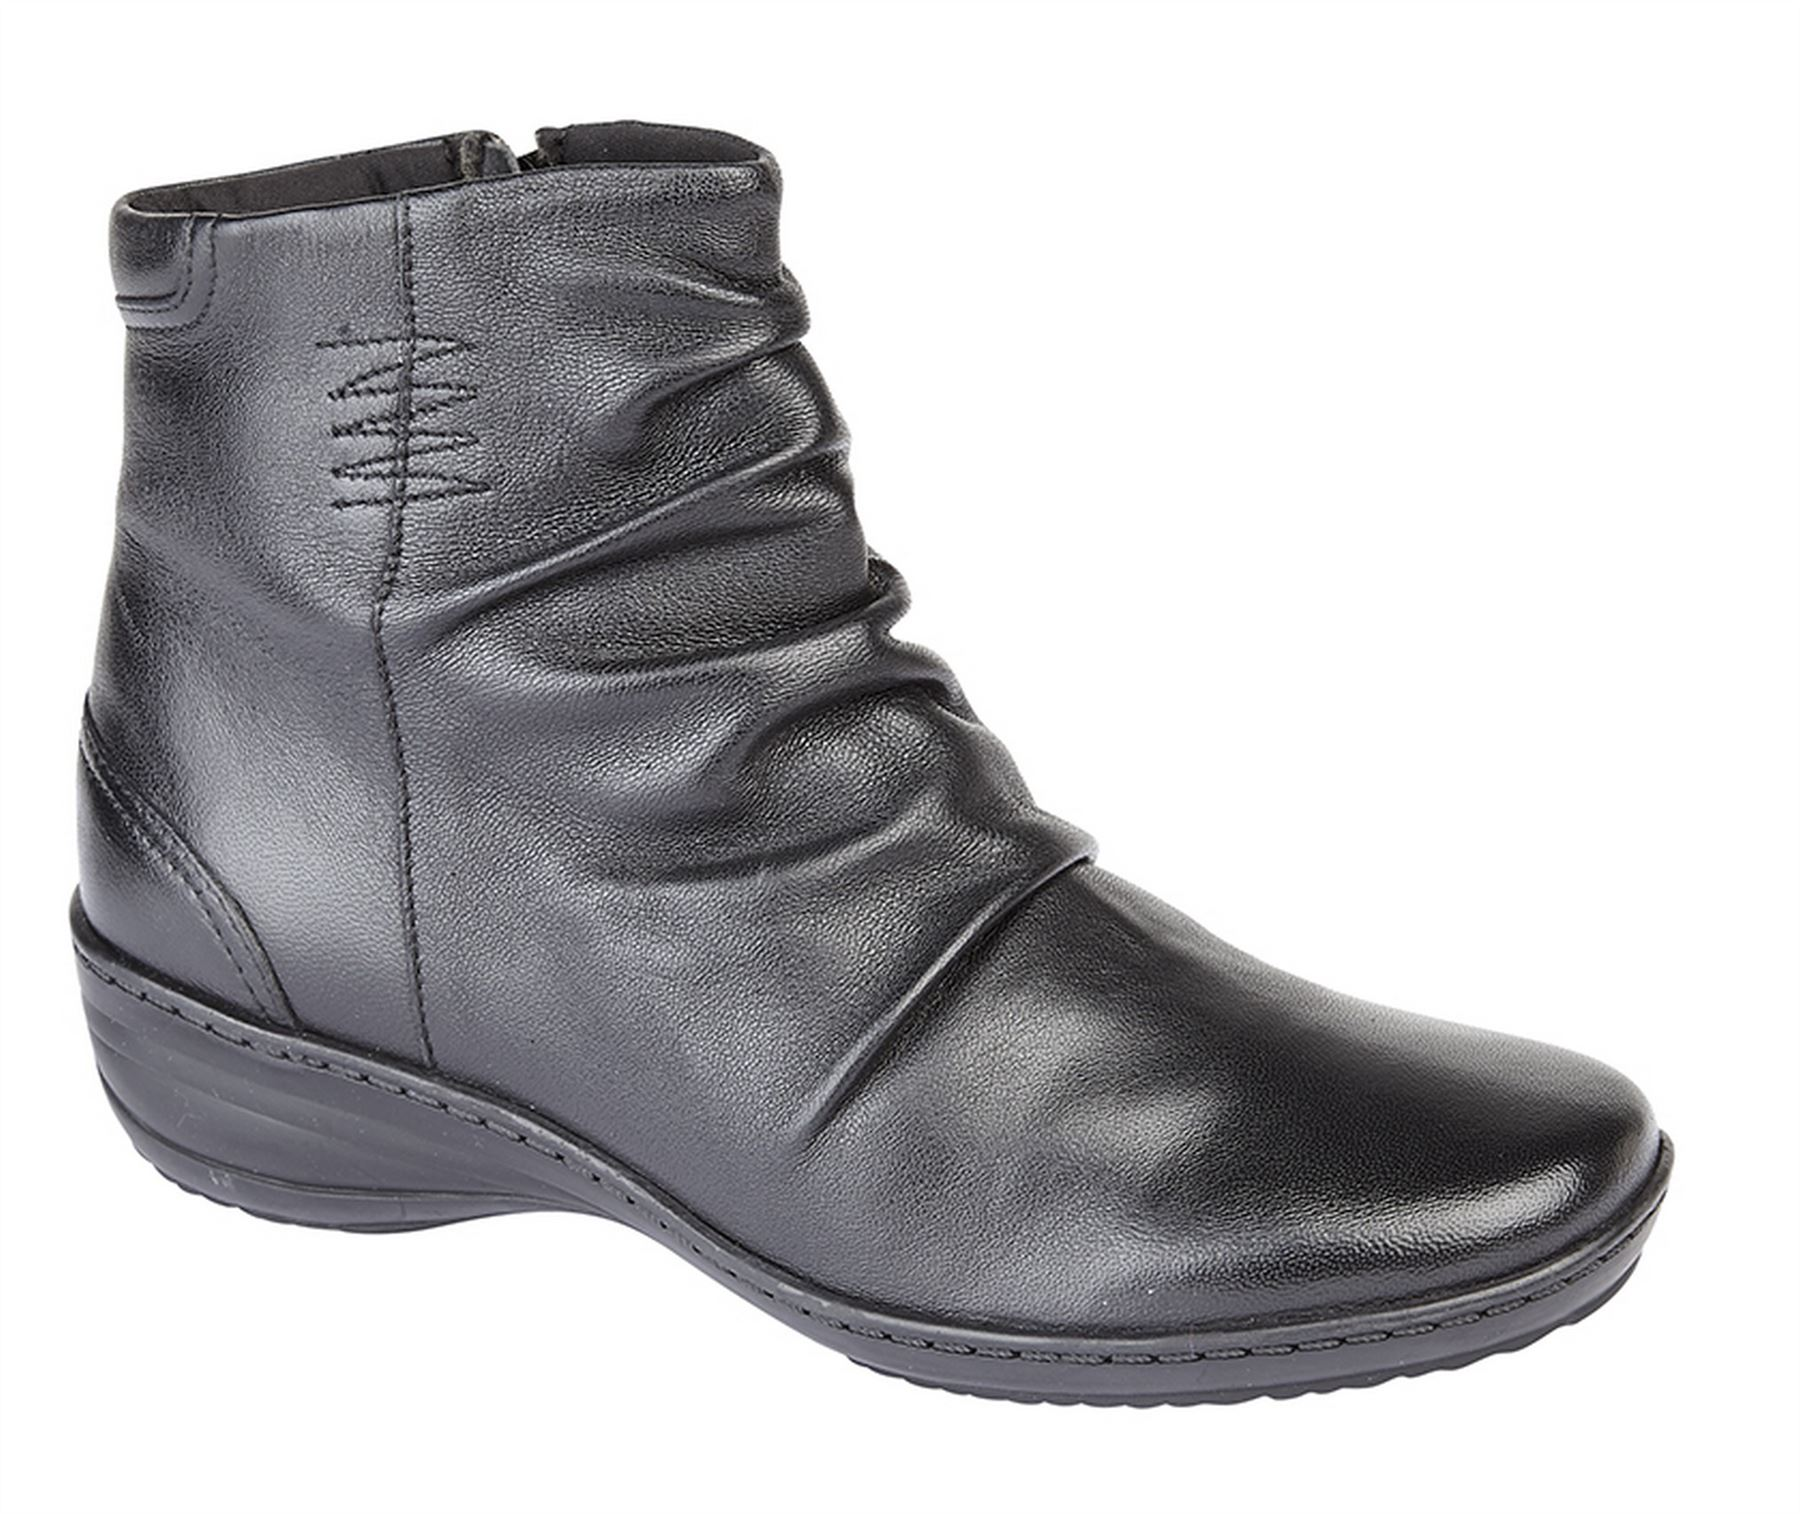 Ladies Womens Ankle Boots Inside Zip Gusset Memory Foam Shoes Size